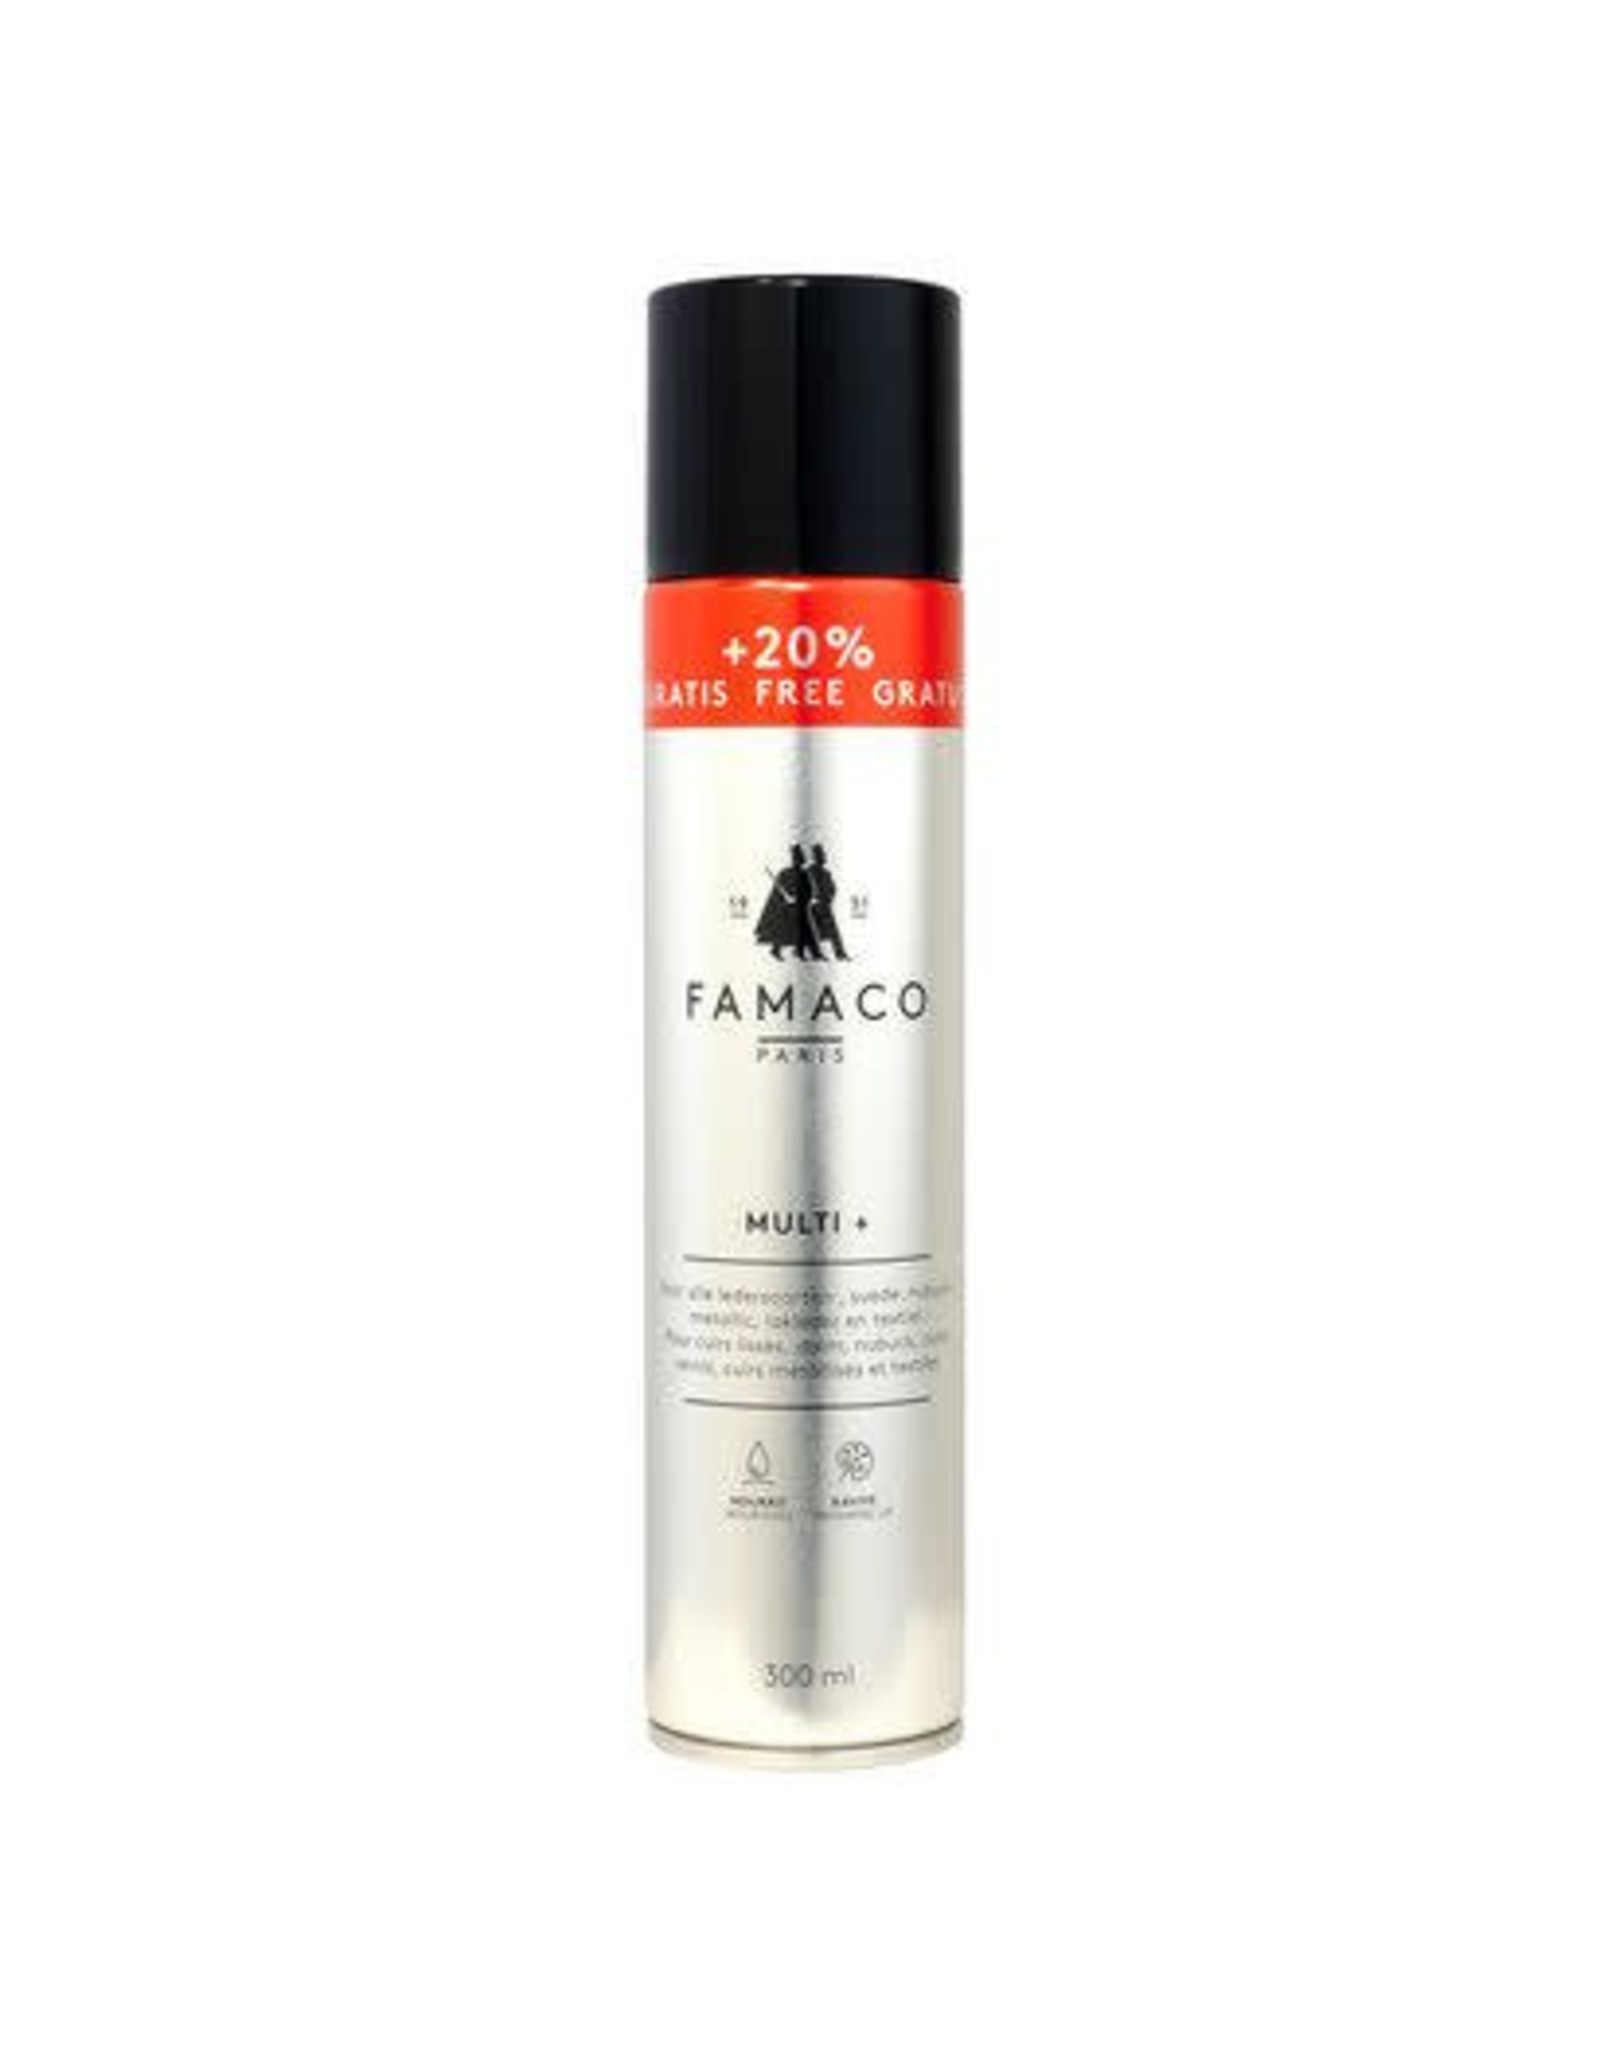 Famaco Famaco multi + spray